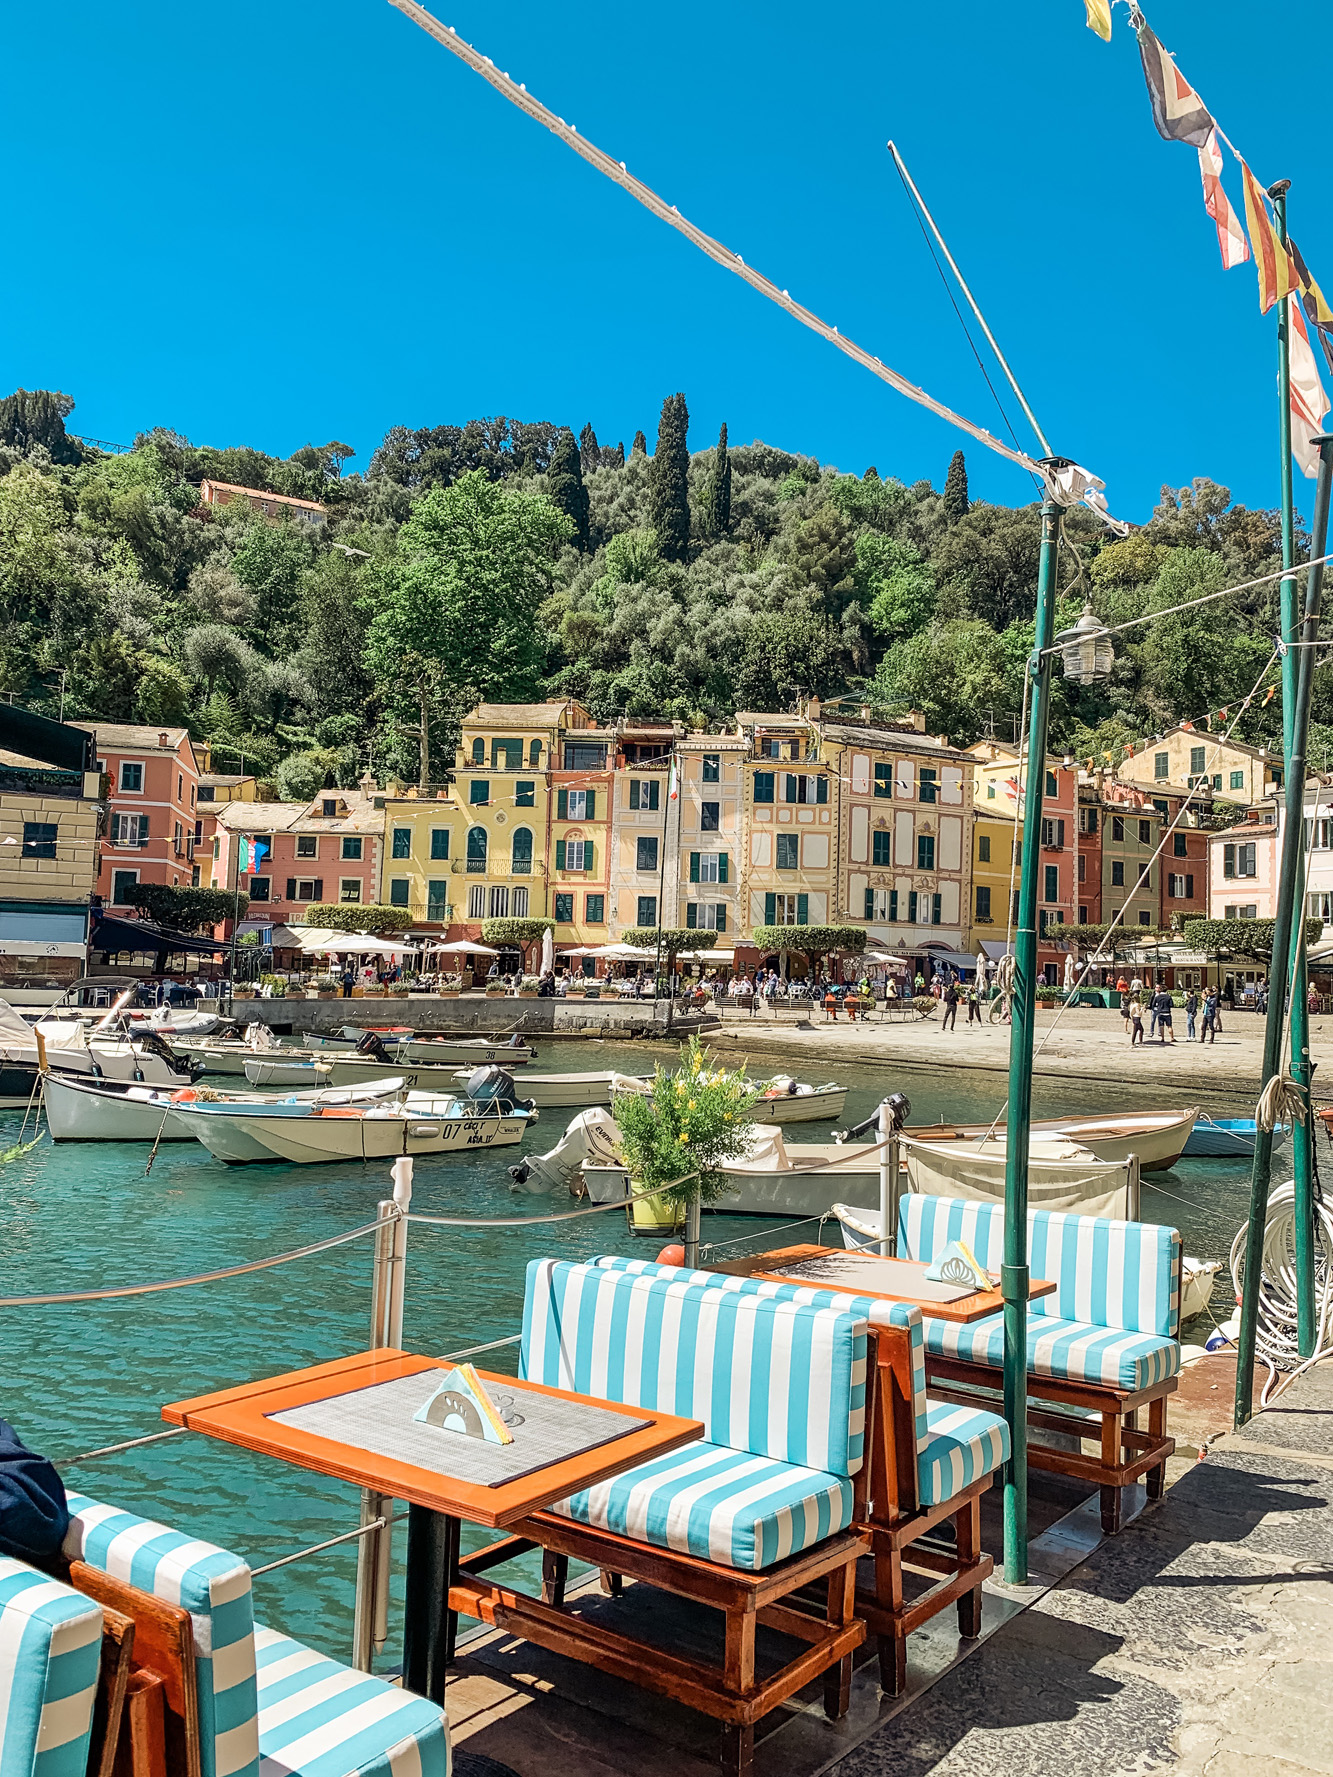 Mediterranean Cruise Travel Guide - From Barcelona to Rome | Windstar Cruise Review | Kristy Wicks